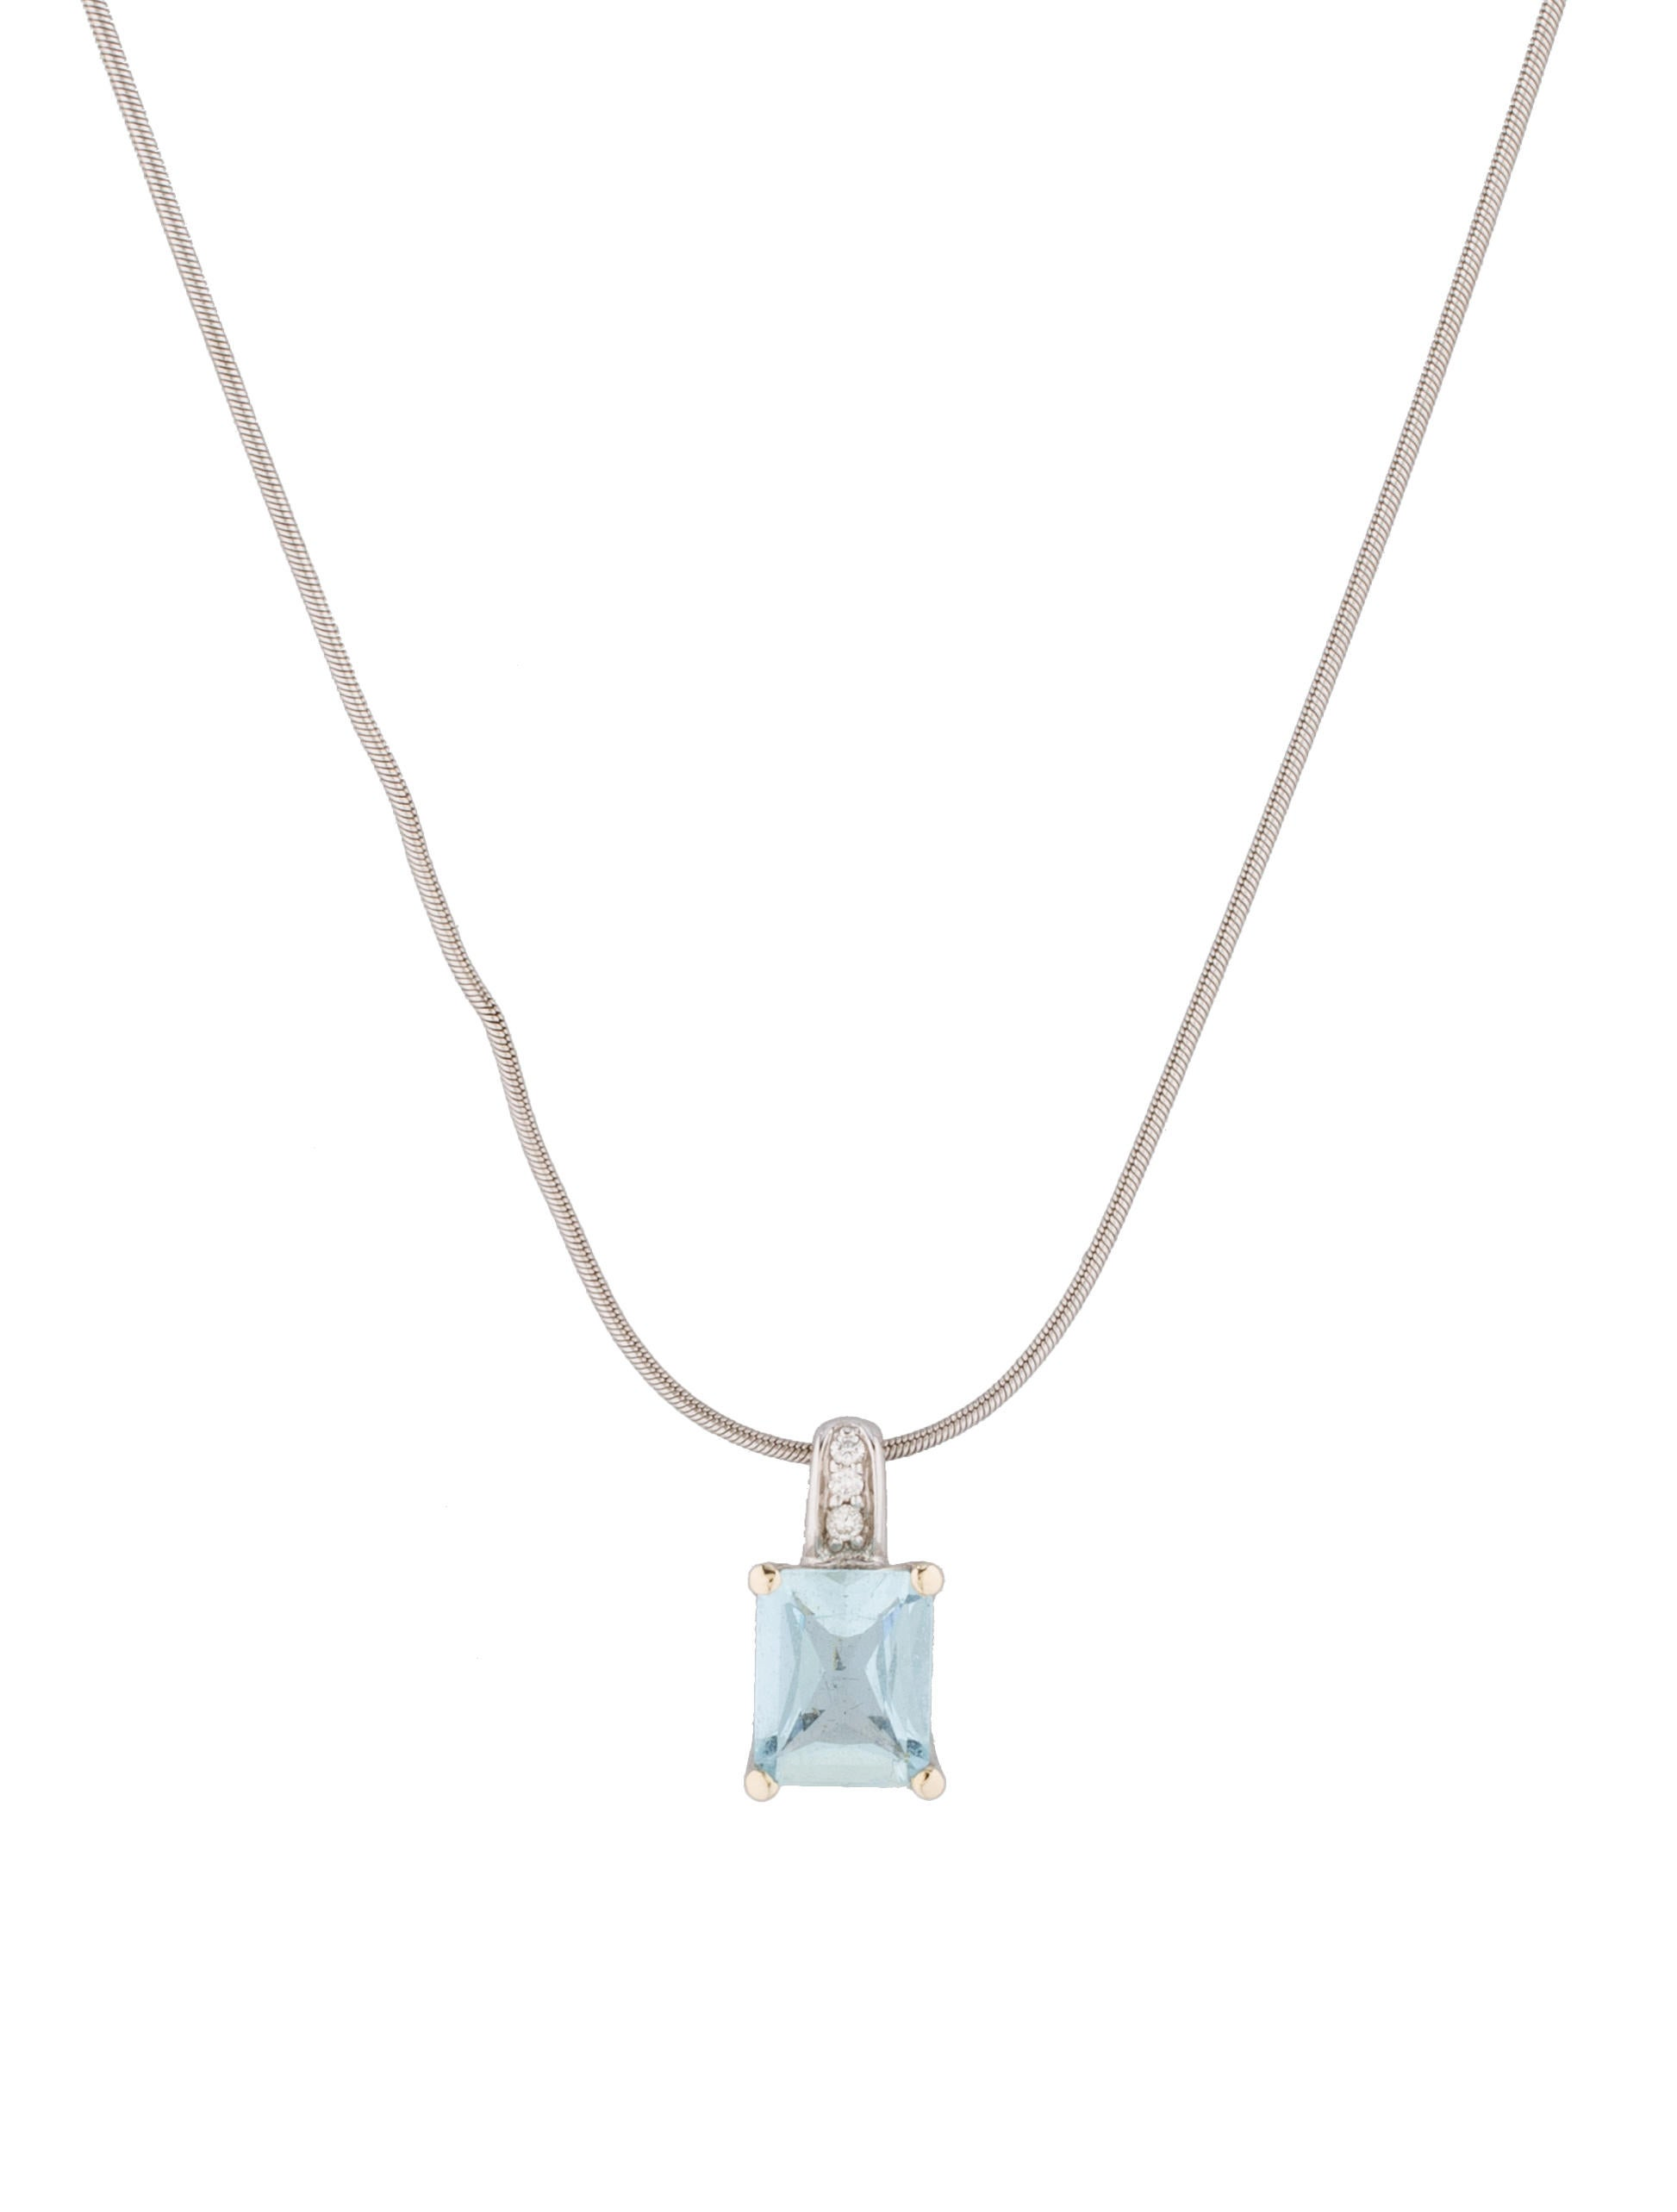 h necklaces solitaire products diamond necklace aquamarine jewelry stern enlarged pendant and